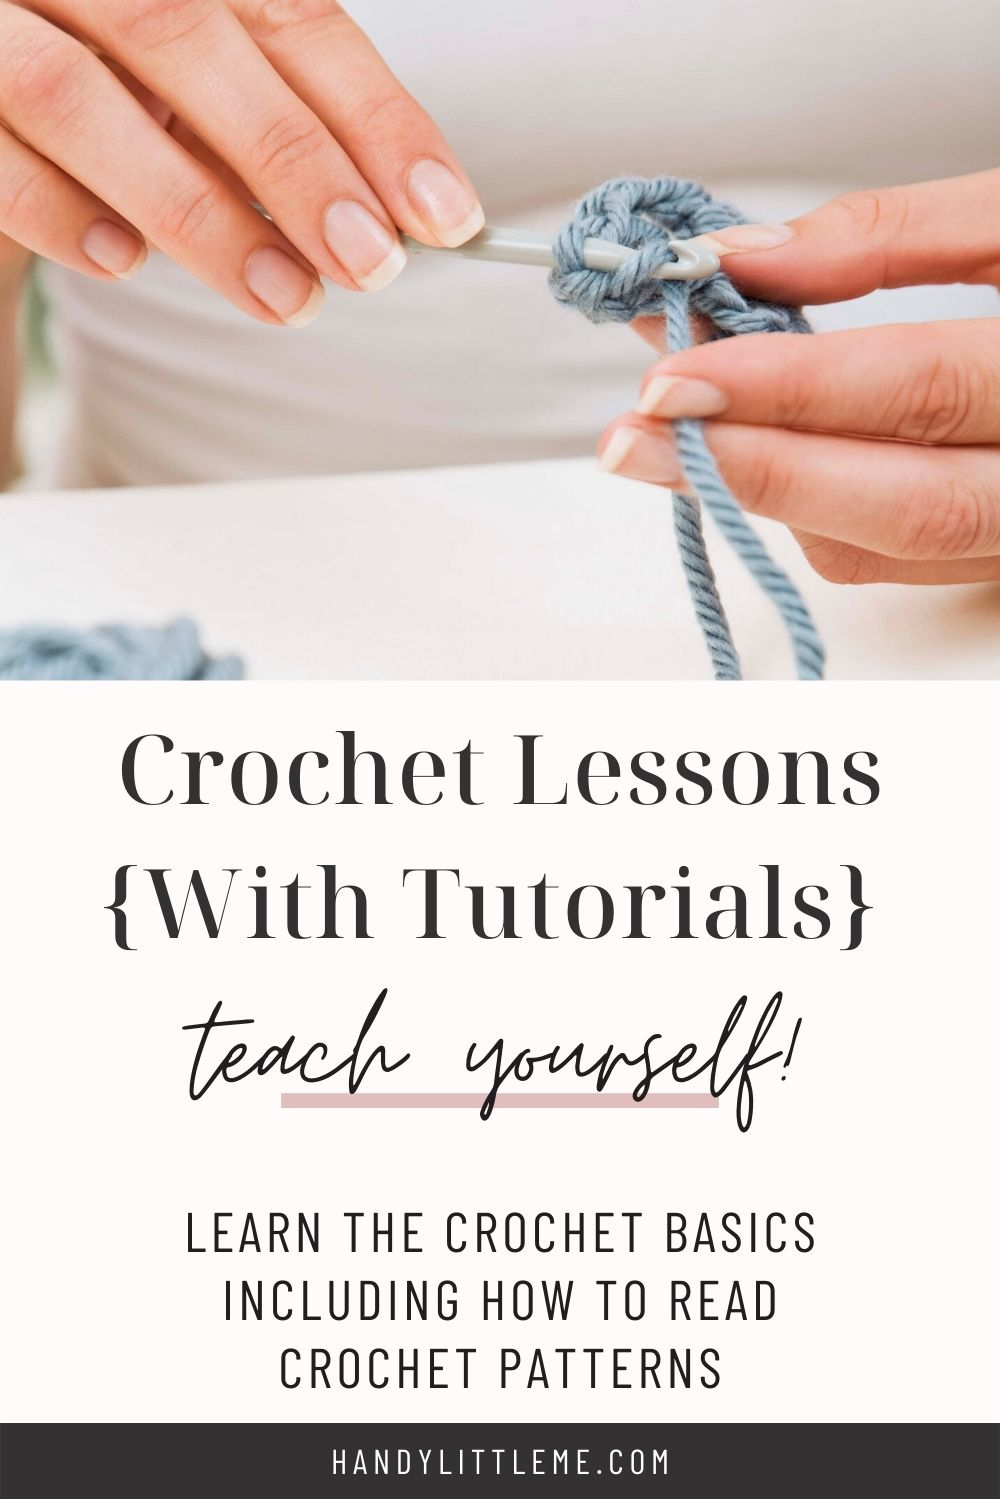 Crochet Lessons with tutorials